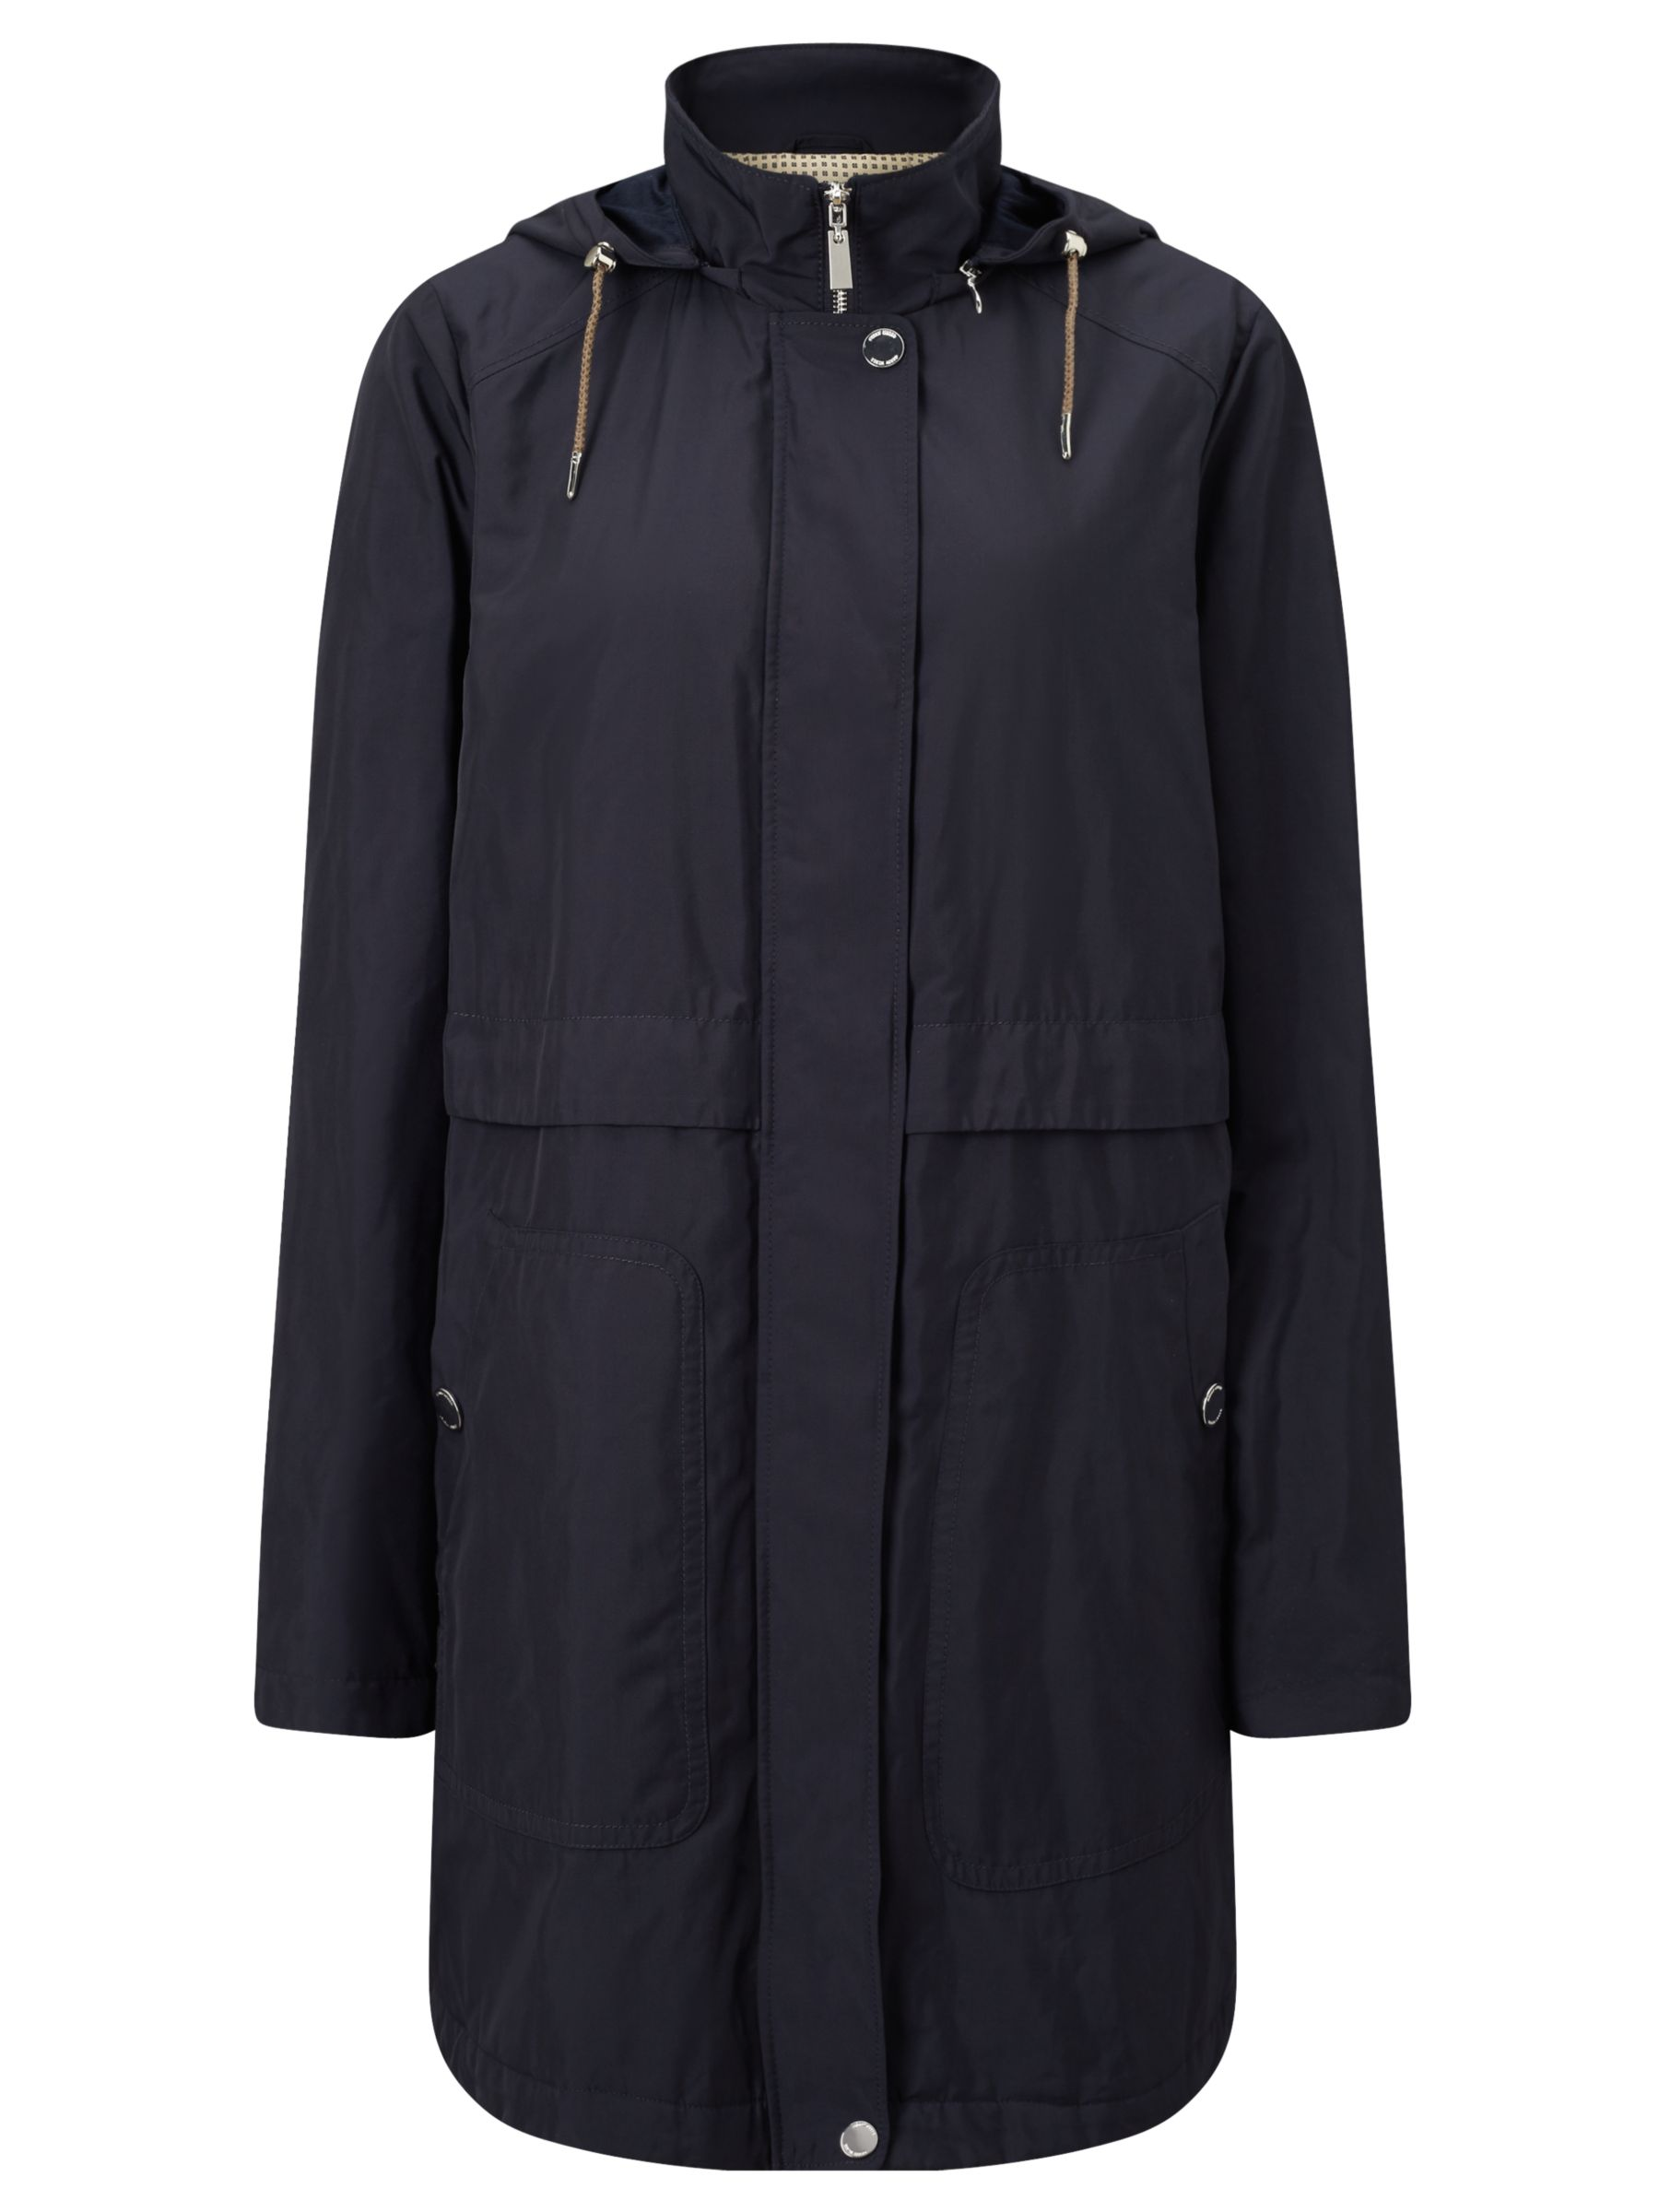 Gerry Weber Gerry Weber Water Repellent Hooded Coat, Navy